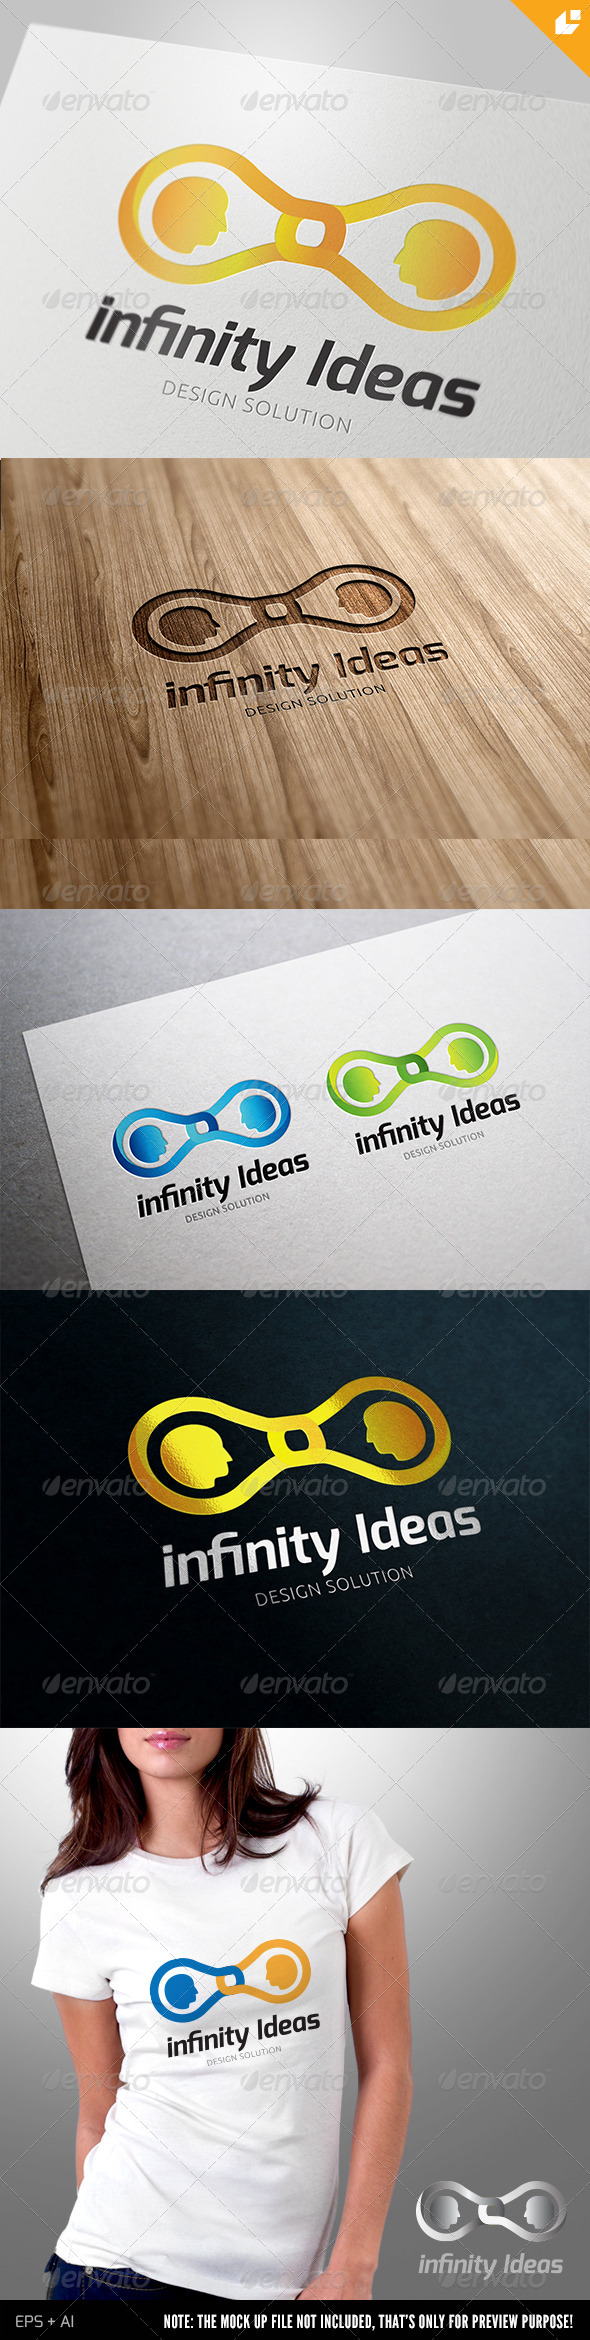 GraphicRiver Infinity ideas Logo 4237919